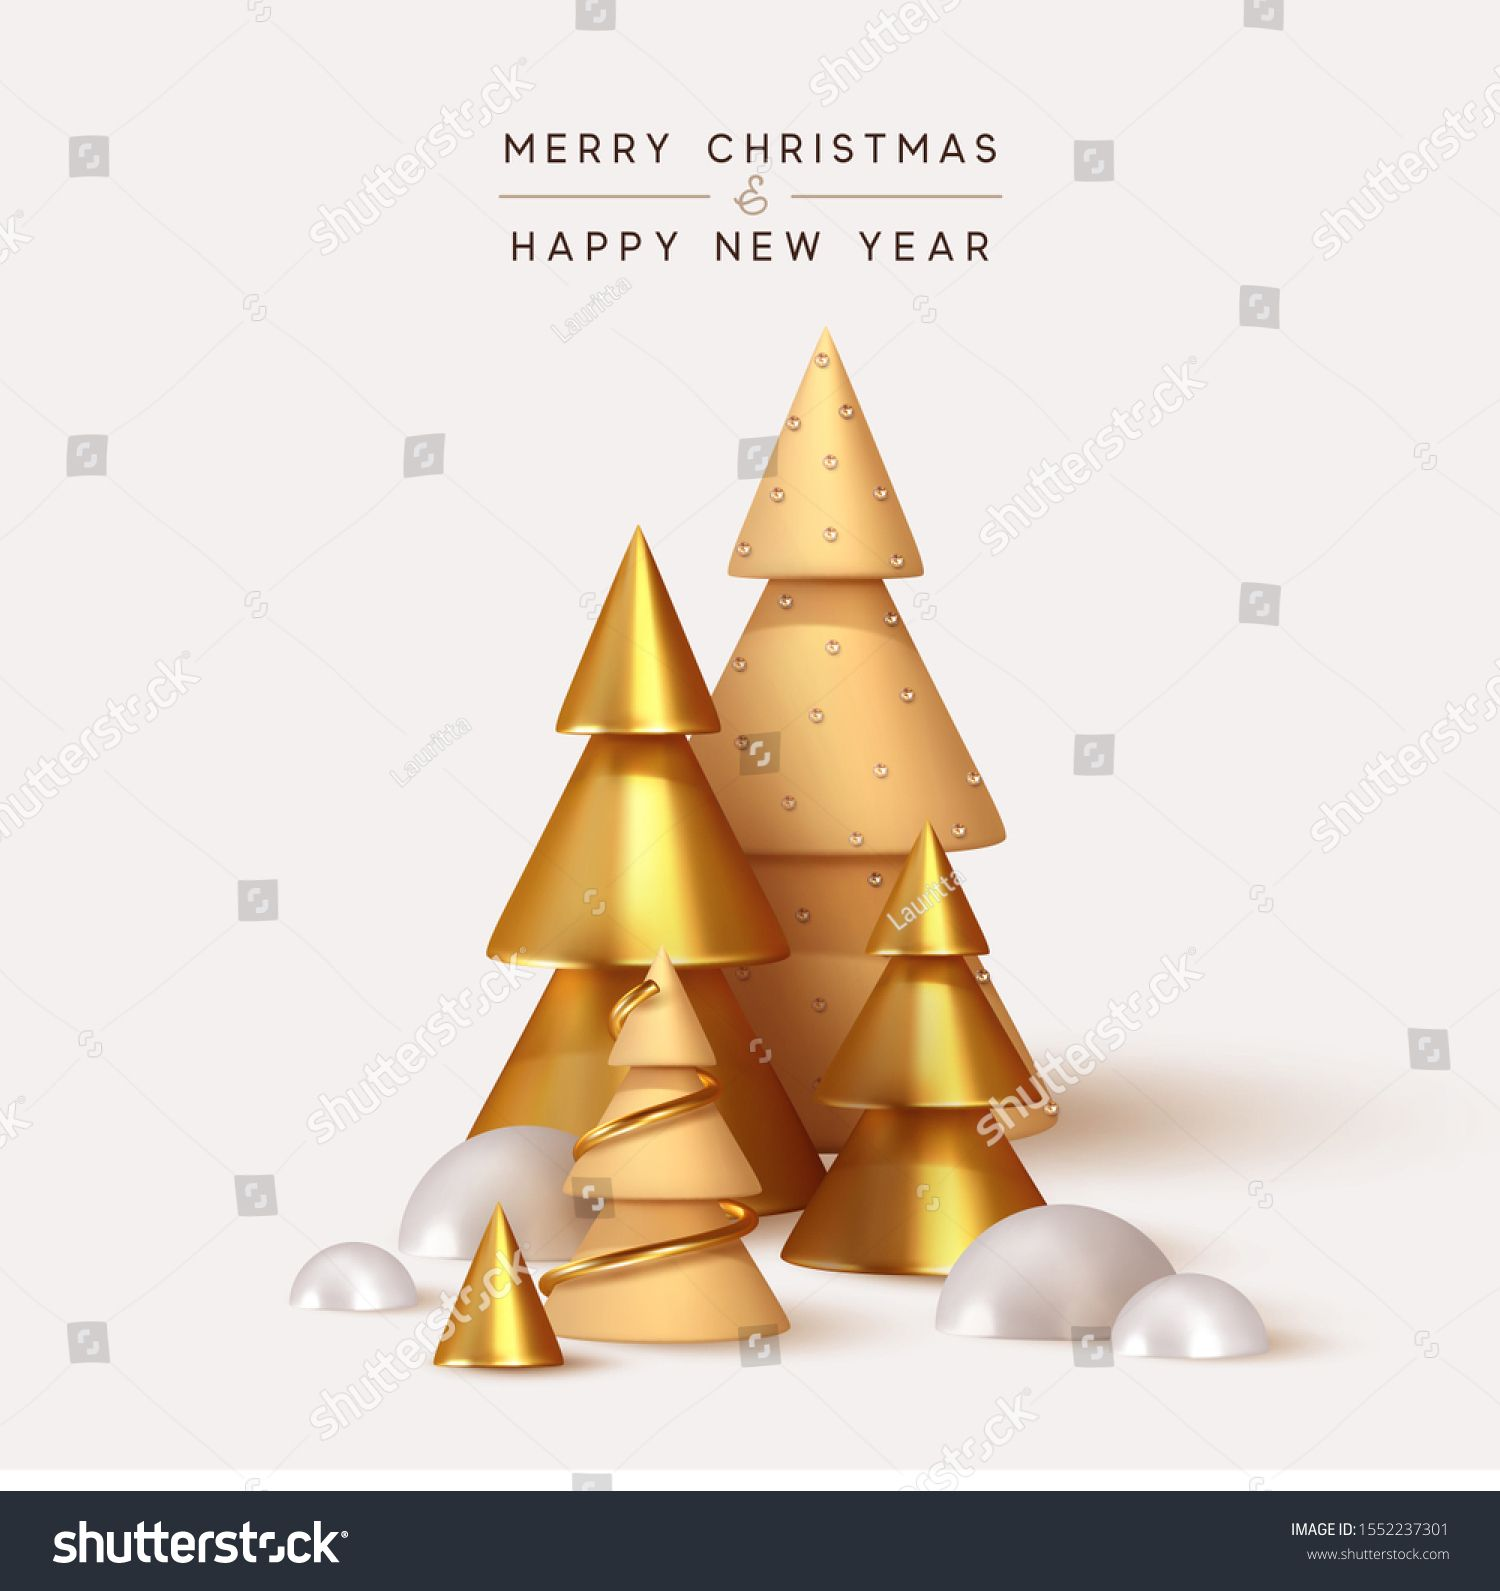 Abstract Minimal Background With Golden 3d Christmas Trees New Year Cone Shape Trees Xmas Decorative Ornaments In 2020 3d Christmas Tree Minimal Background Abstract